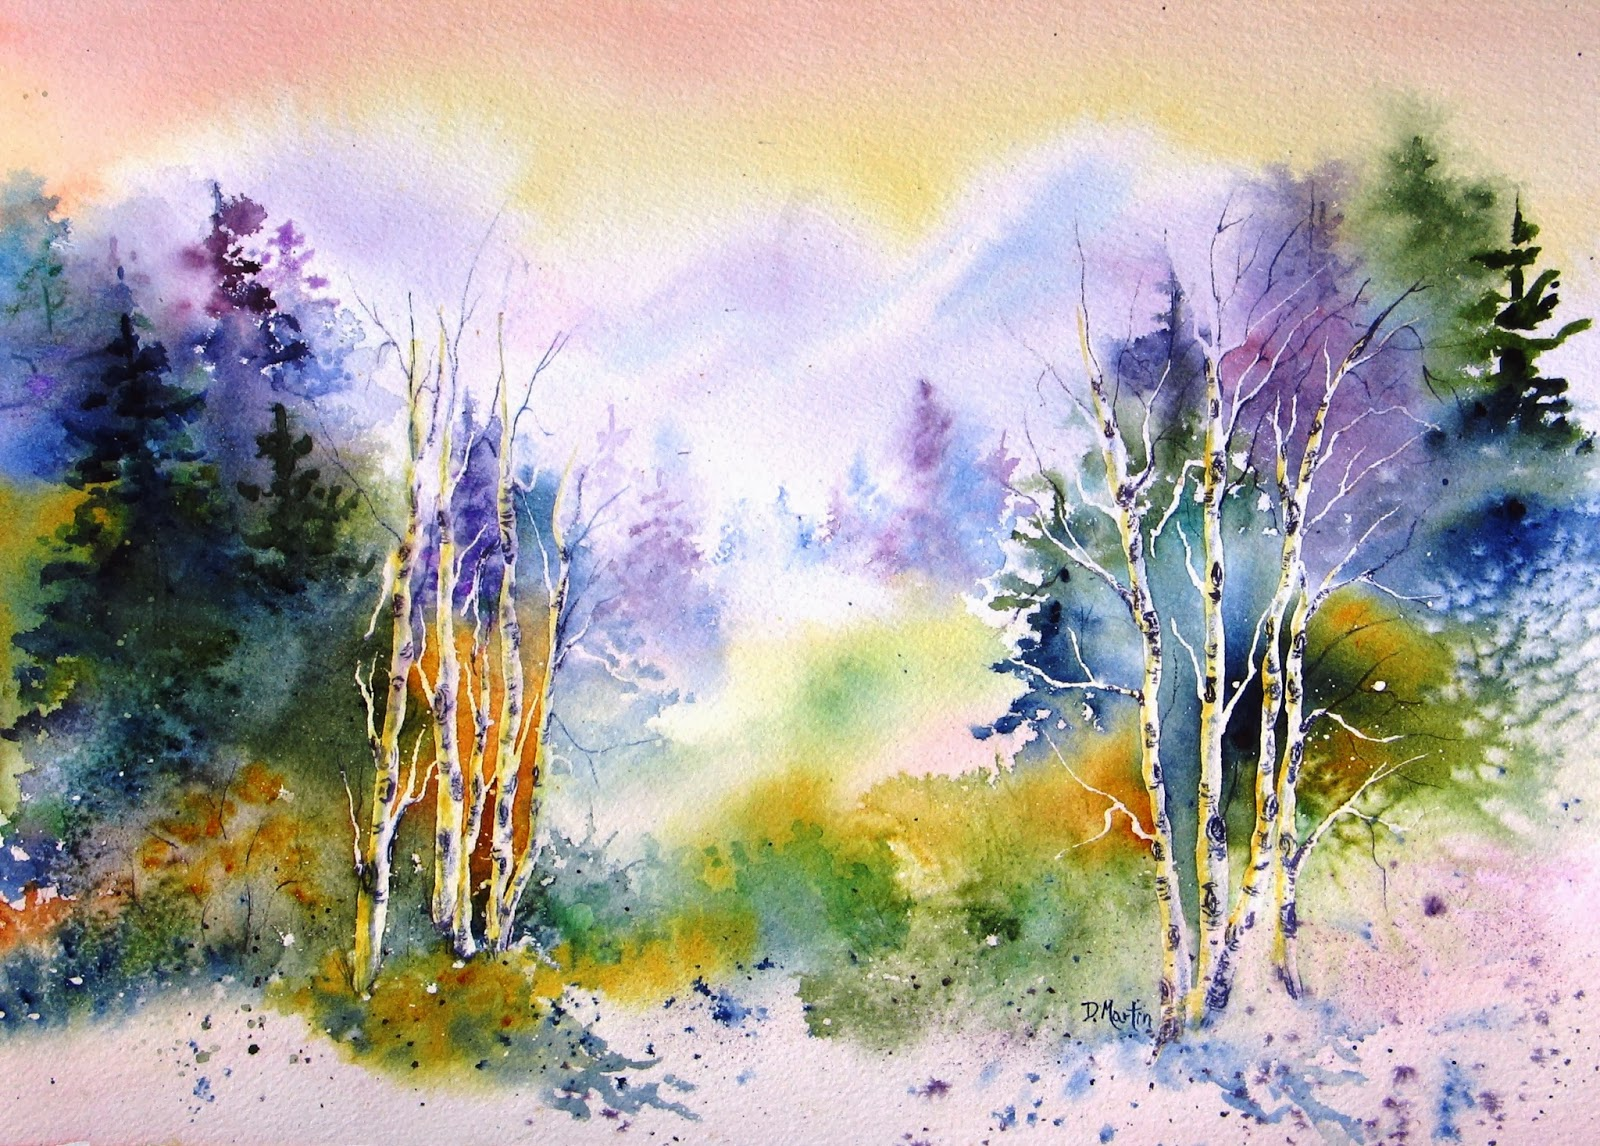 Landscape Elements in Watercolor